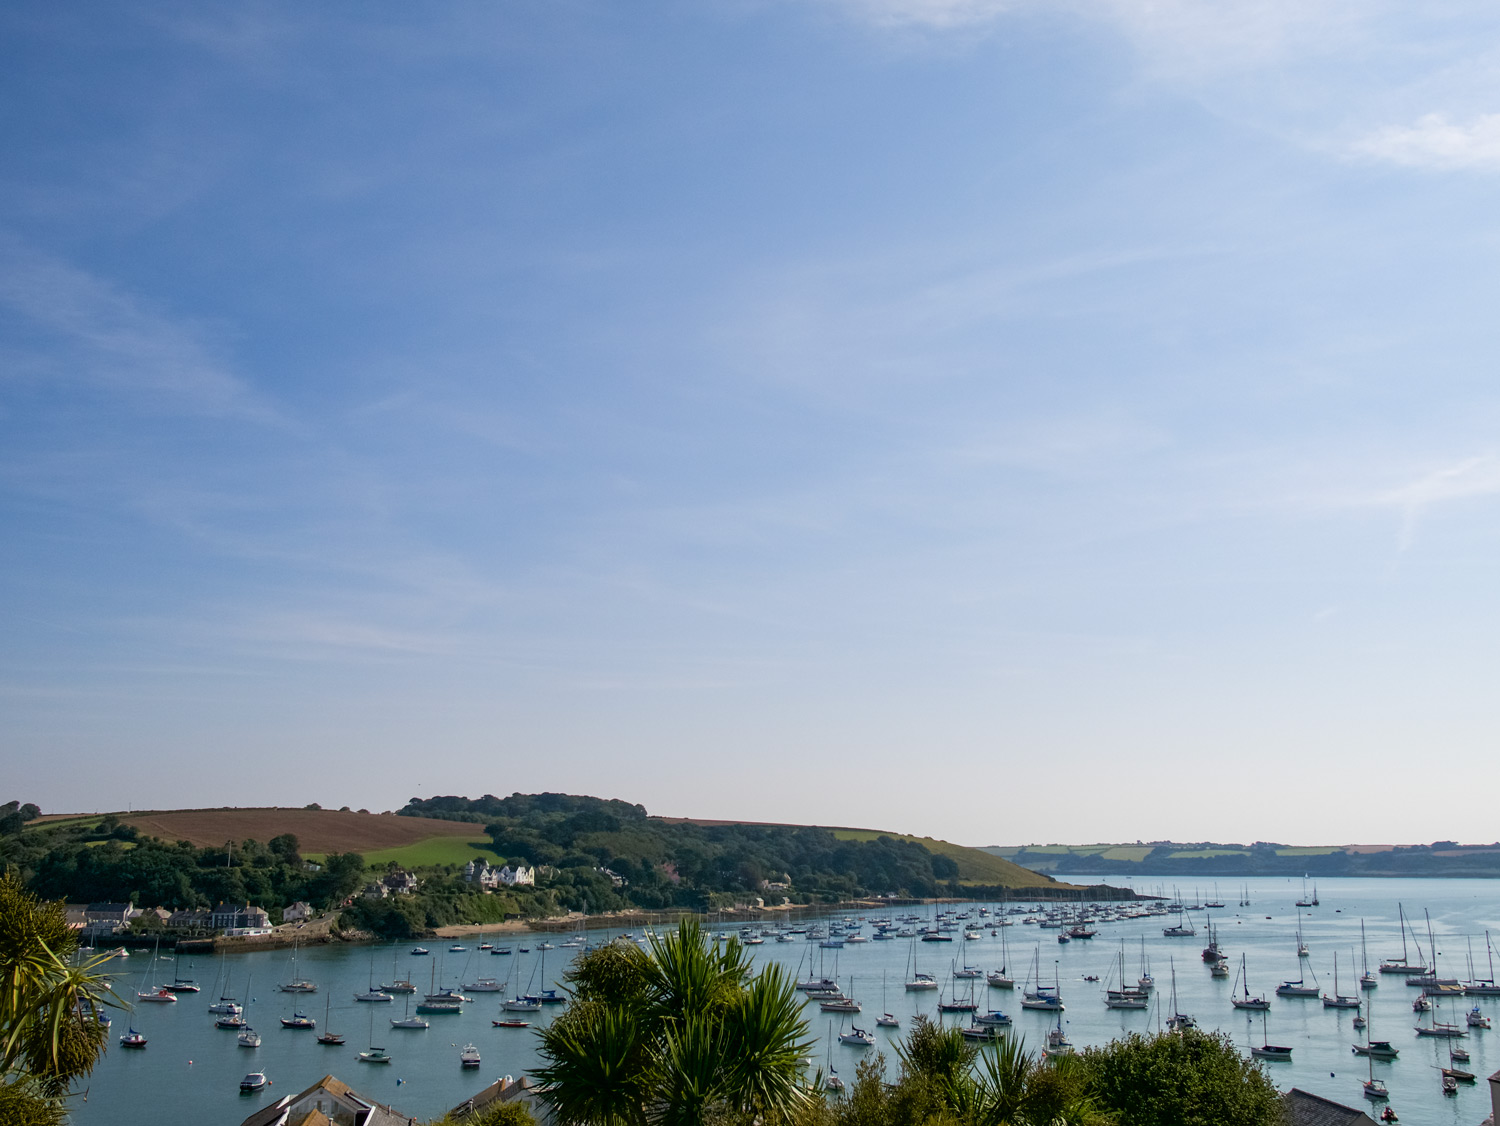 Views of Falmouth Harbour and over to Flushing